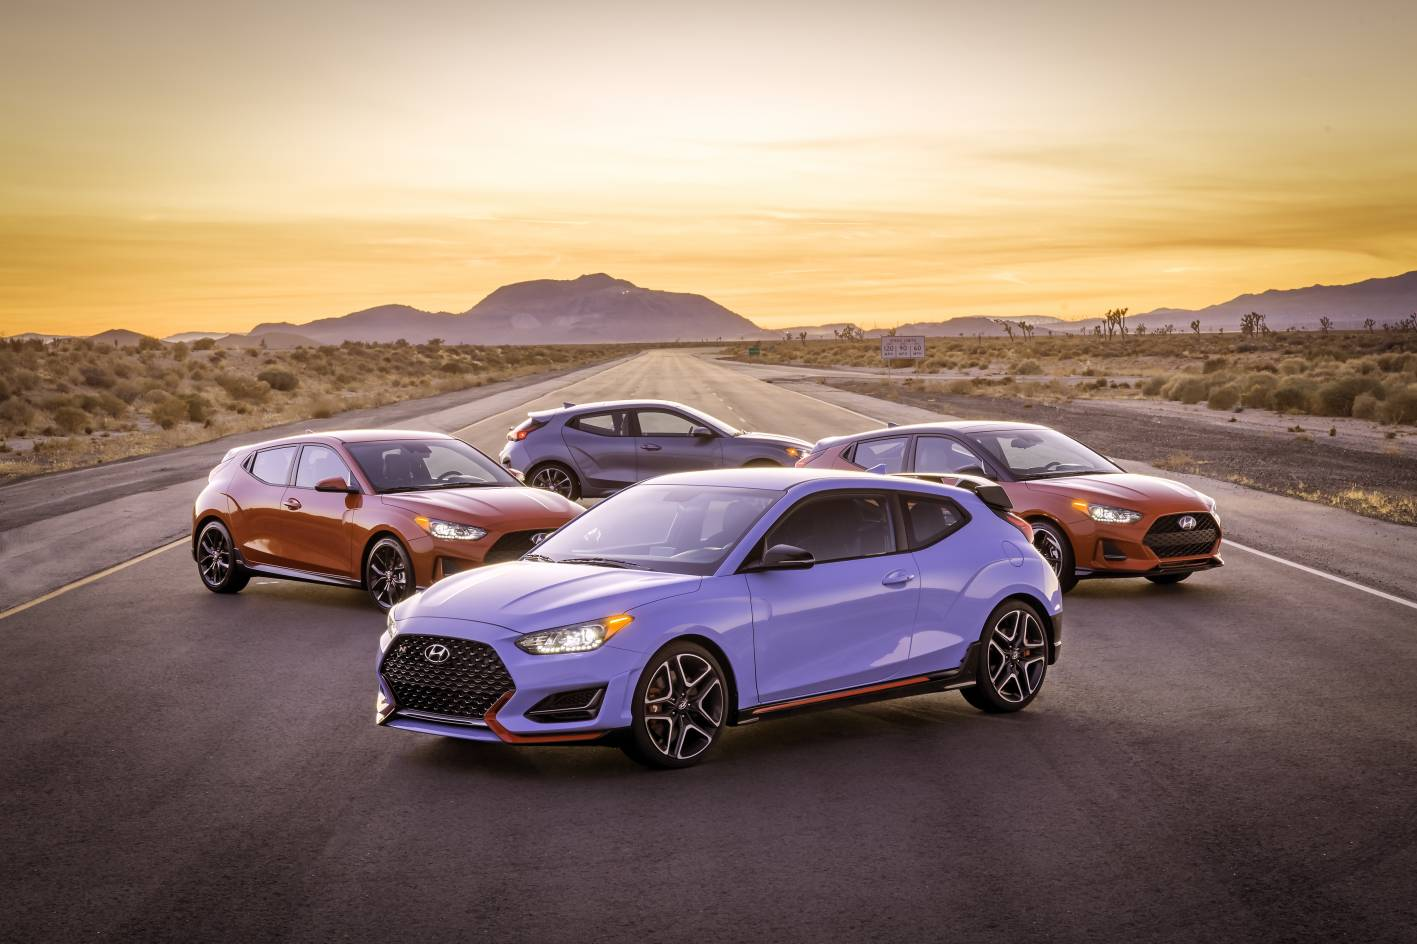 2019 Hyundai Veloster and Veloster N officially unveiled - ForceGT com